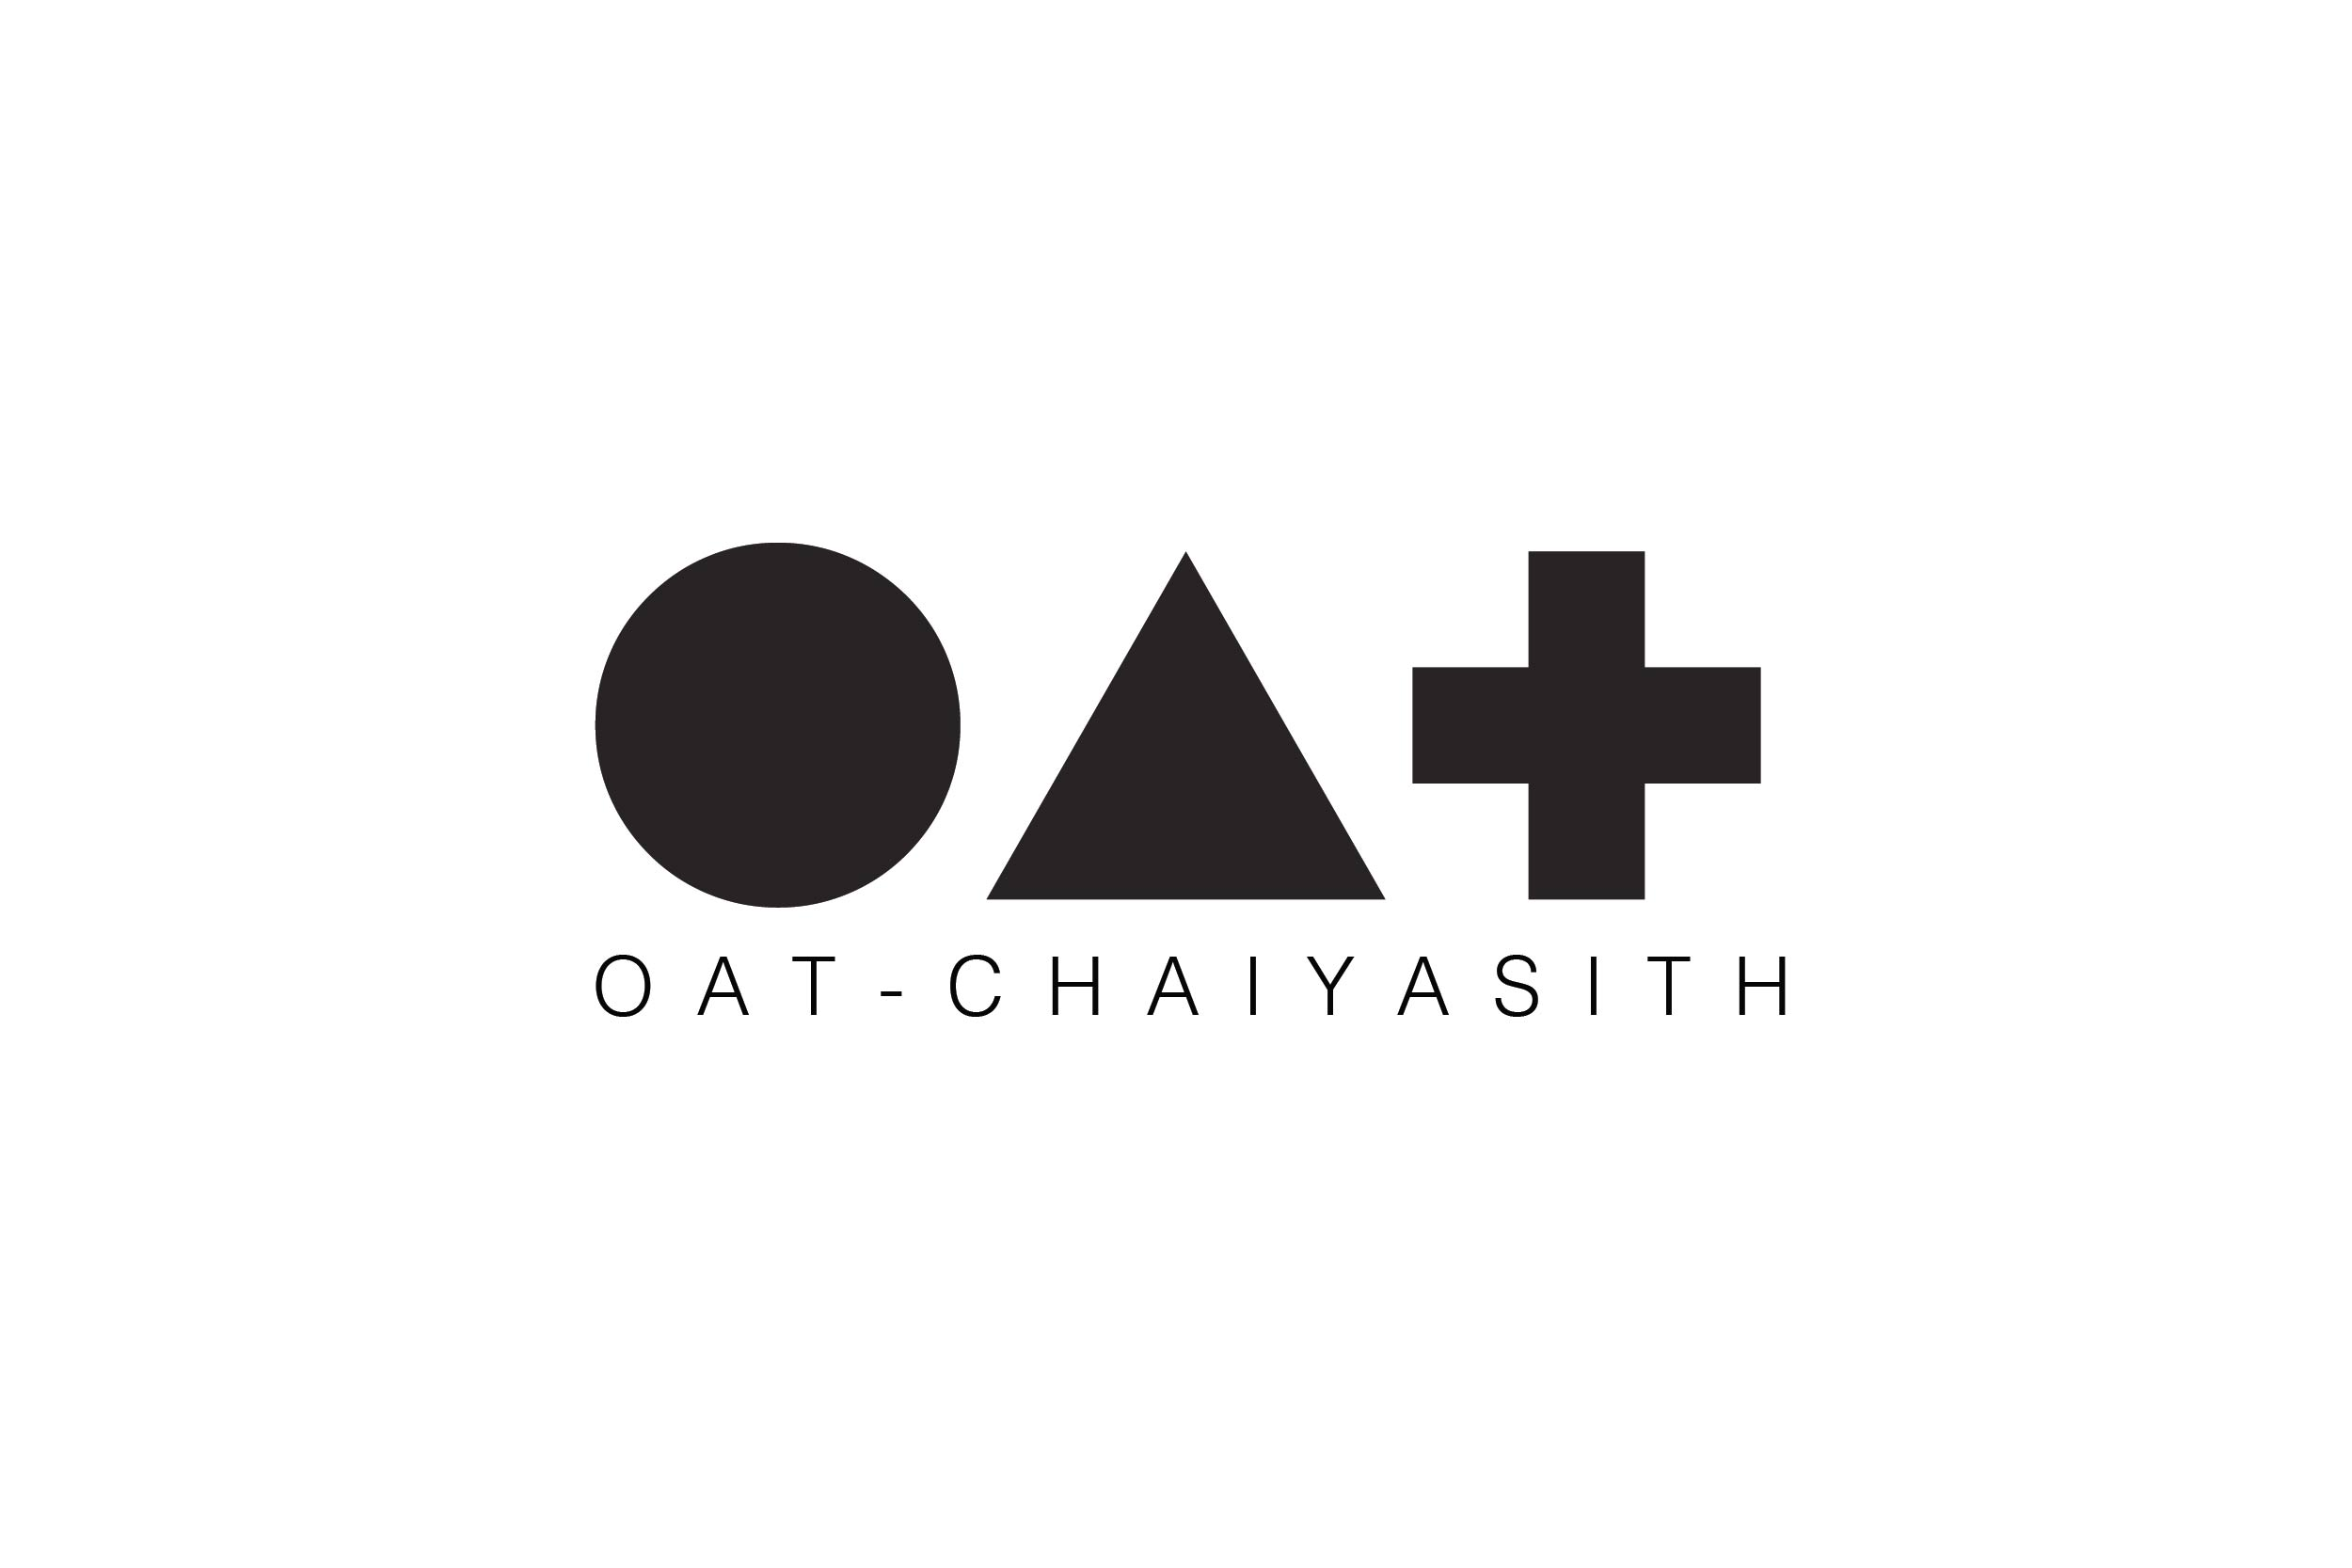 Best wedding photographers in united kingdom: OAT-CHAIYASITH